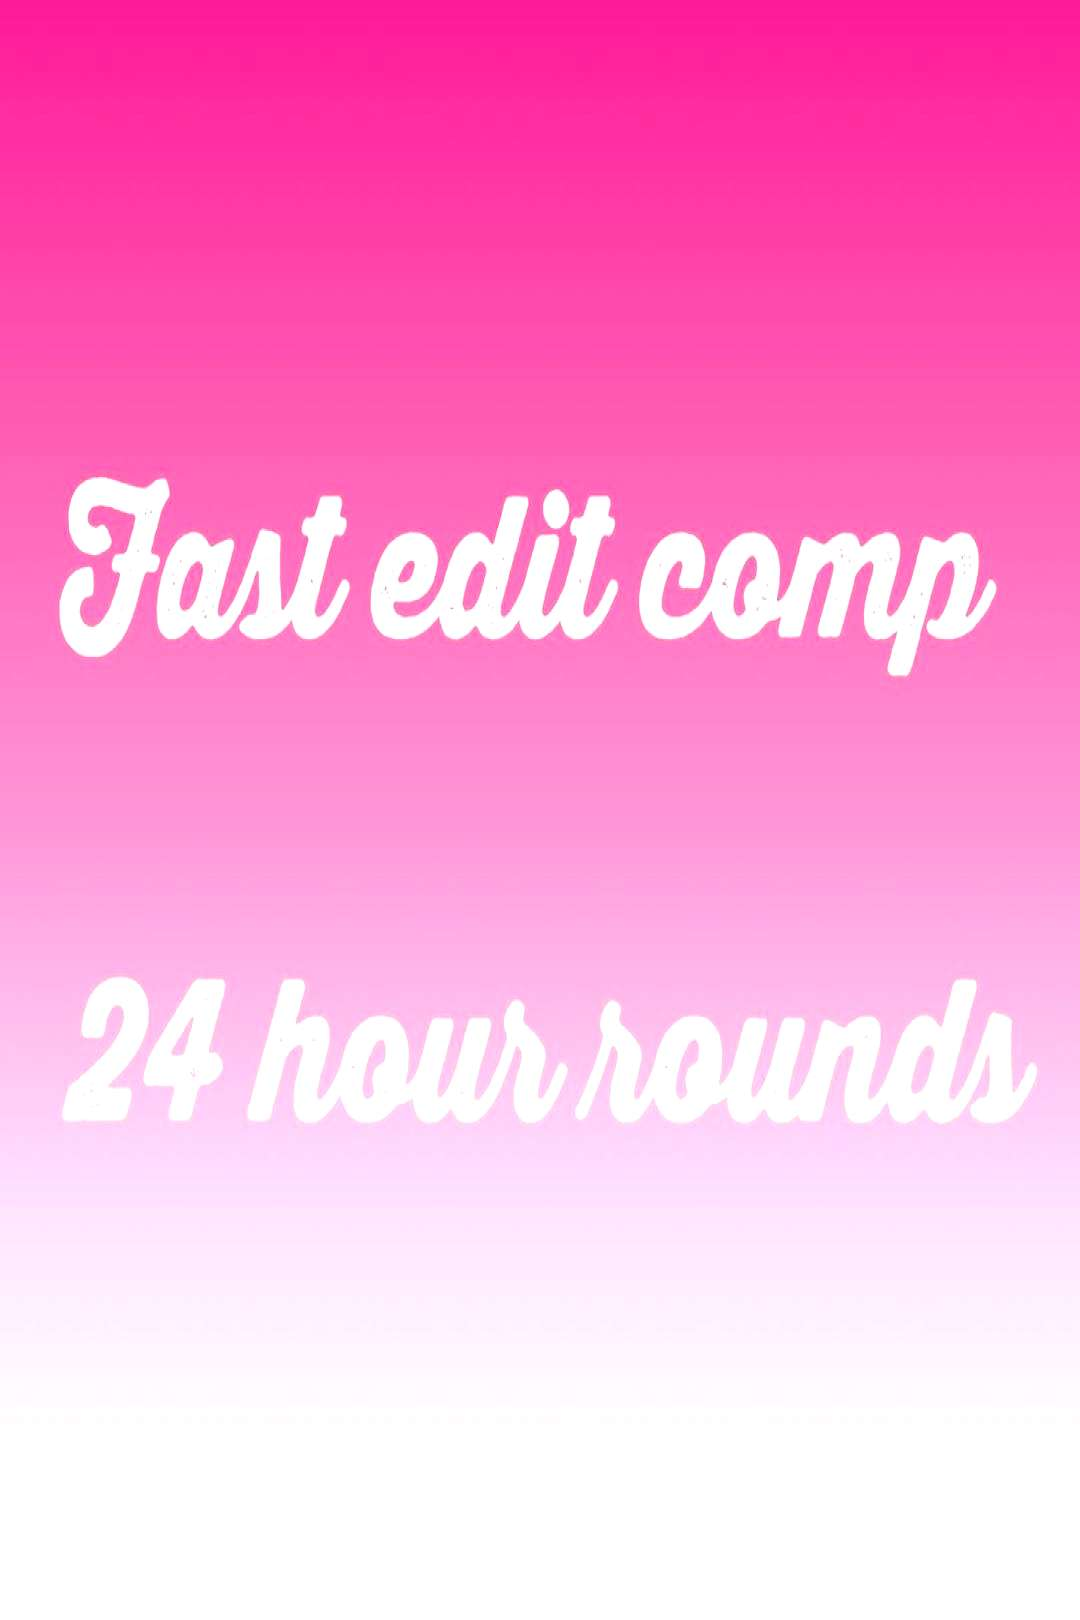 Love The Aldc on June 01 2020 text that says Fast edit comp 24 ho